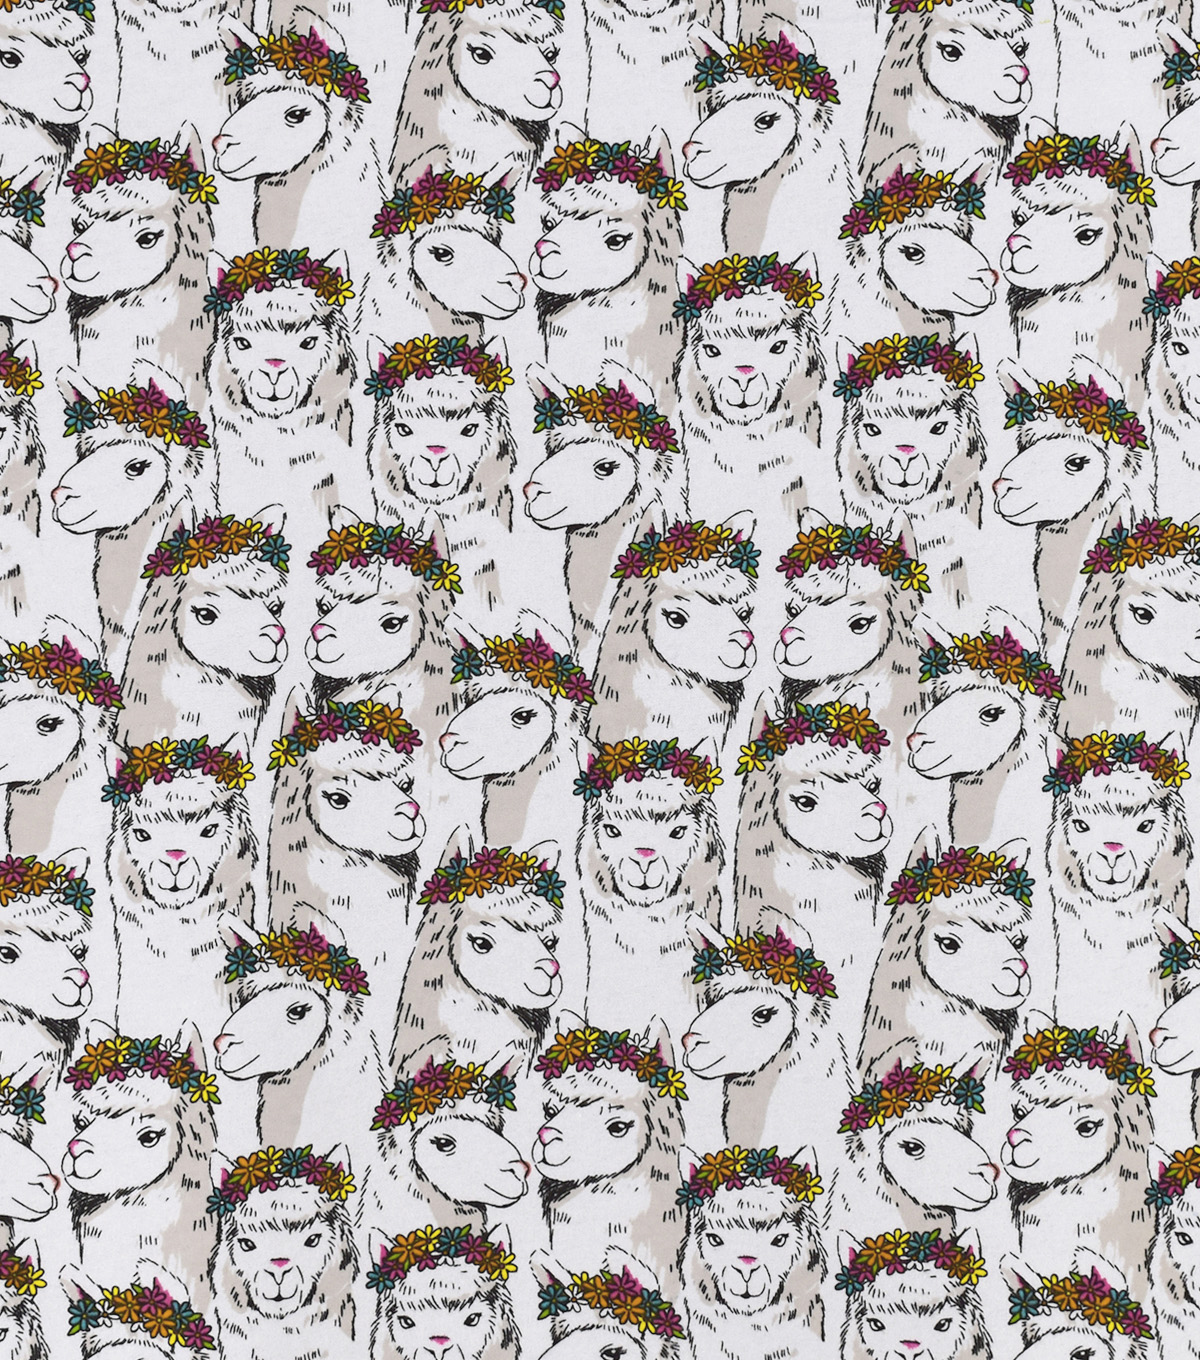 Snuggle Flannel Fabric-Llamas with Floral Crowns